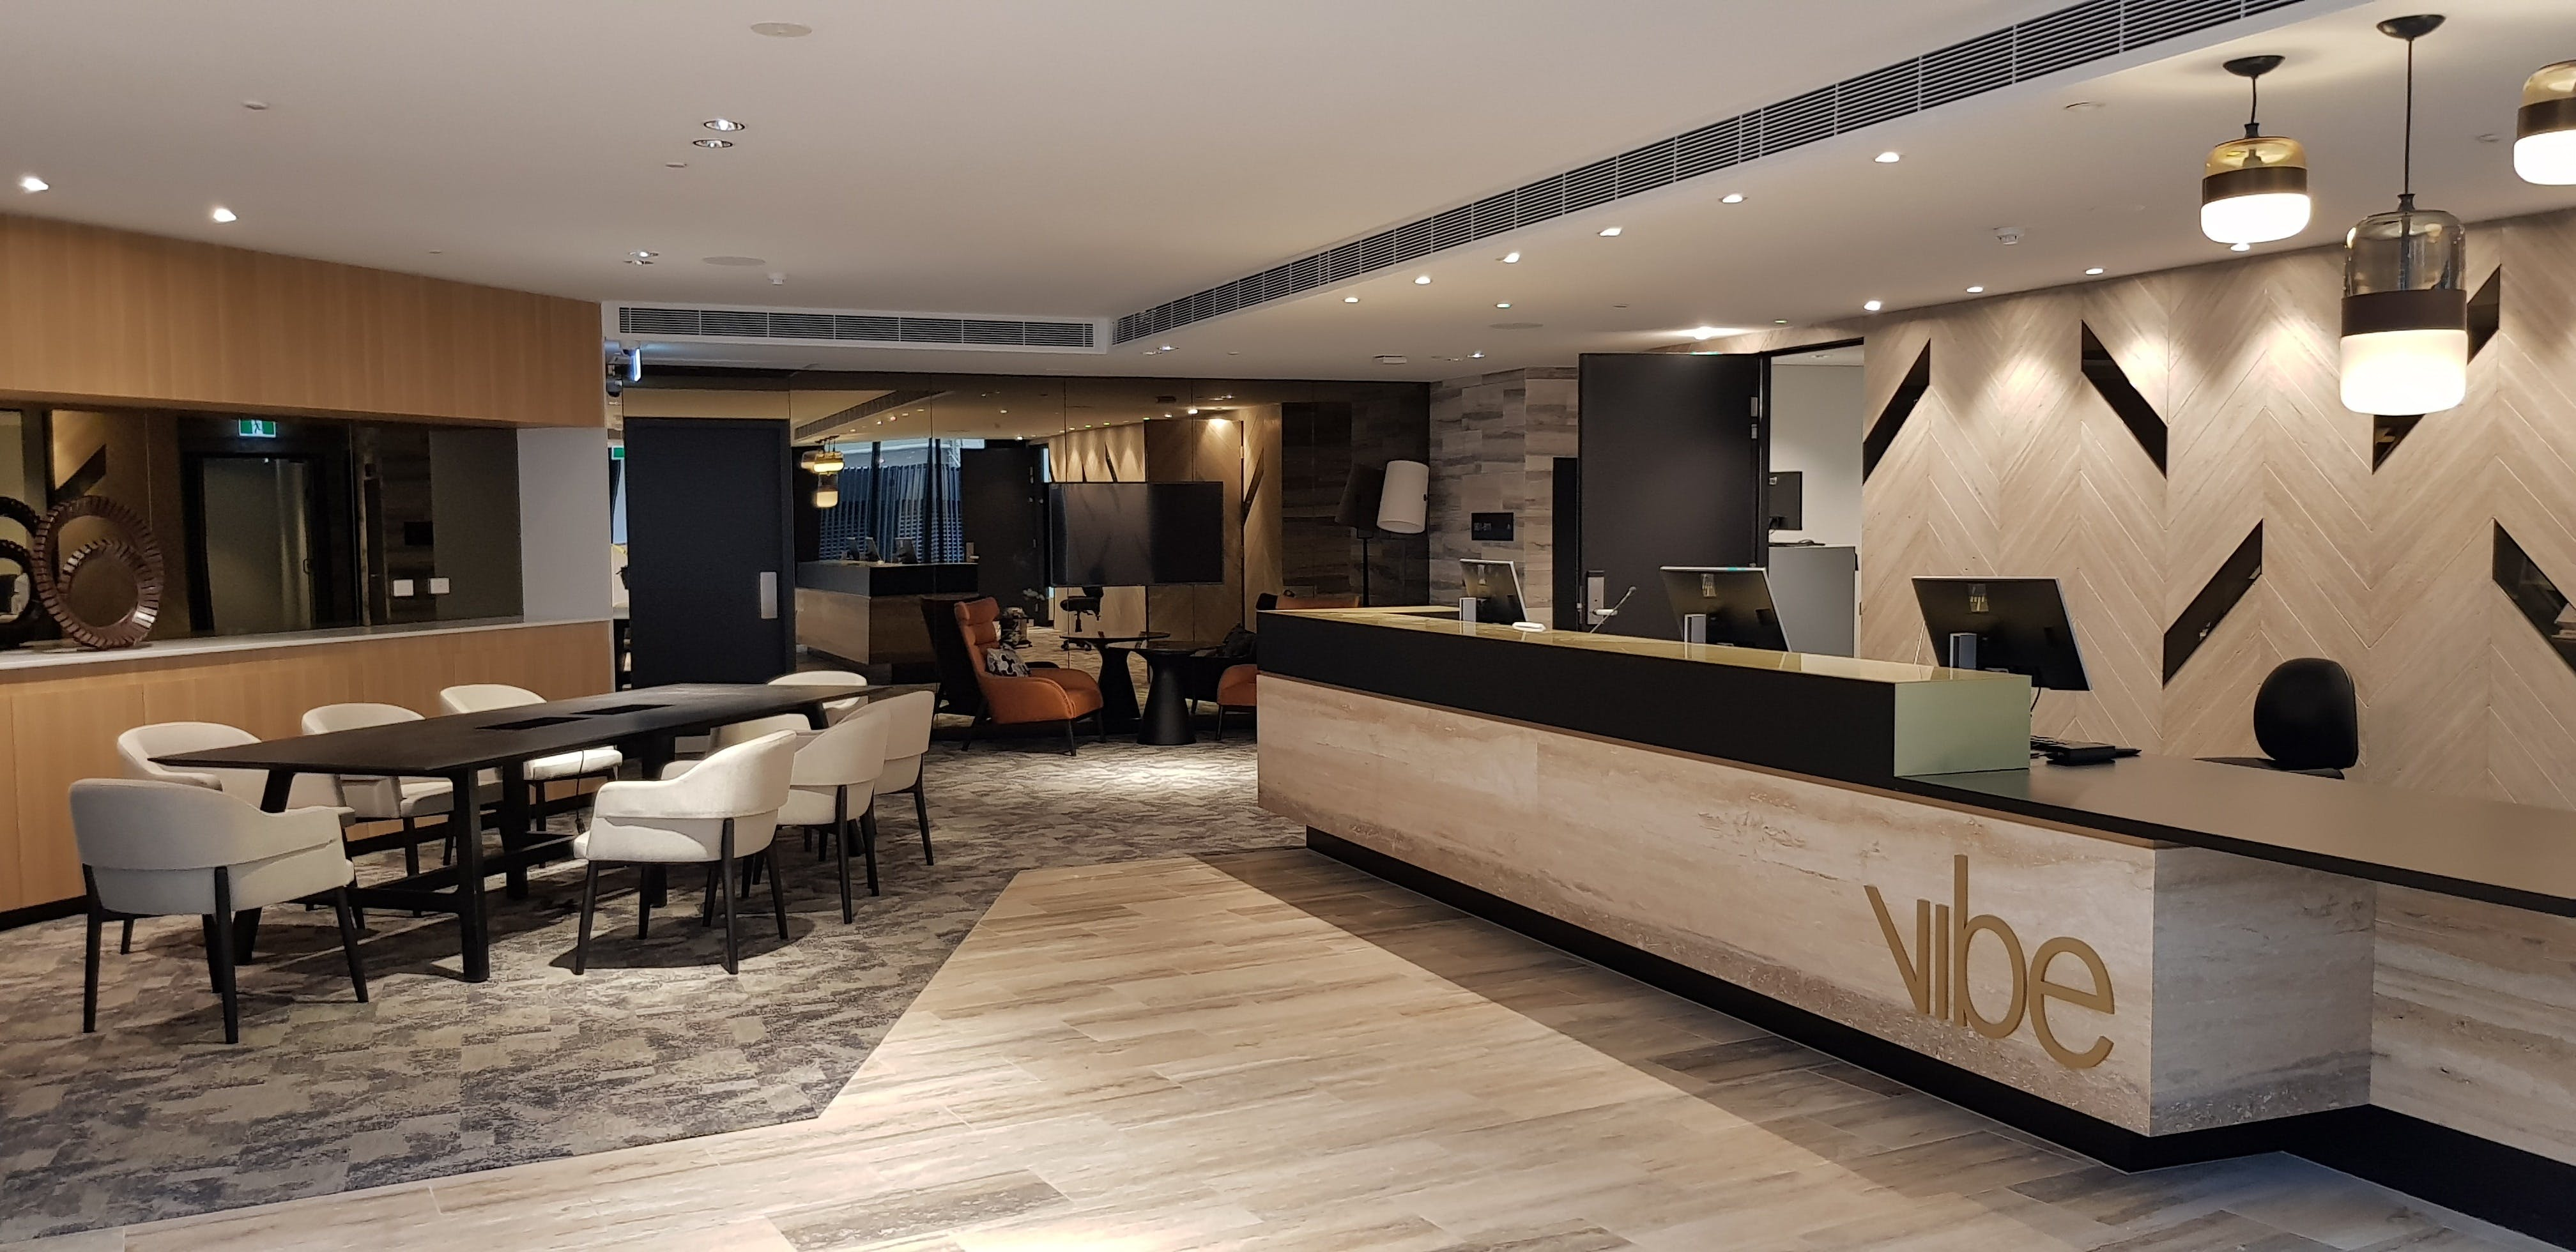 Vibe Hotel North Sydney - Surfers Gold Coast